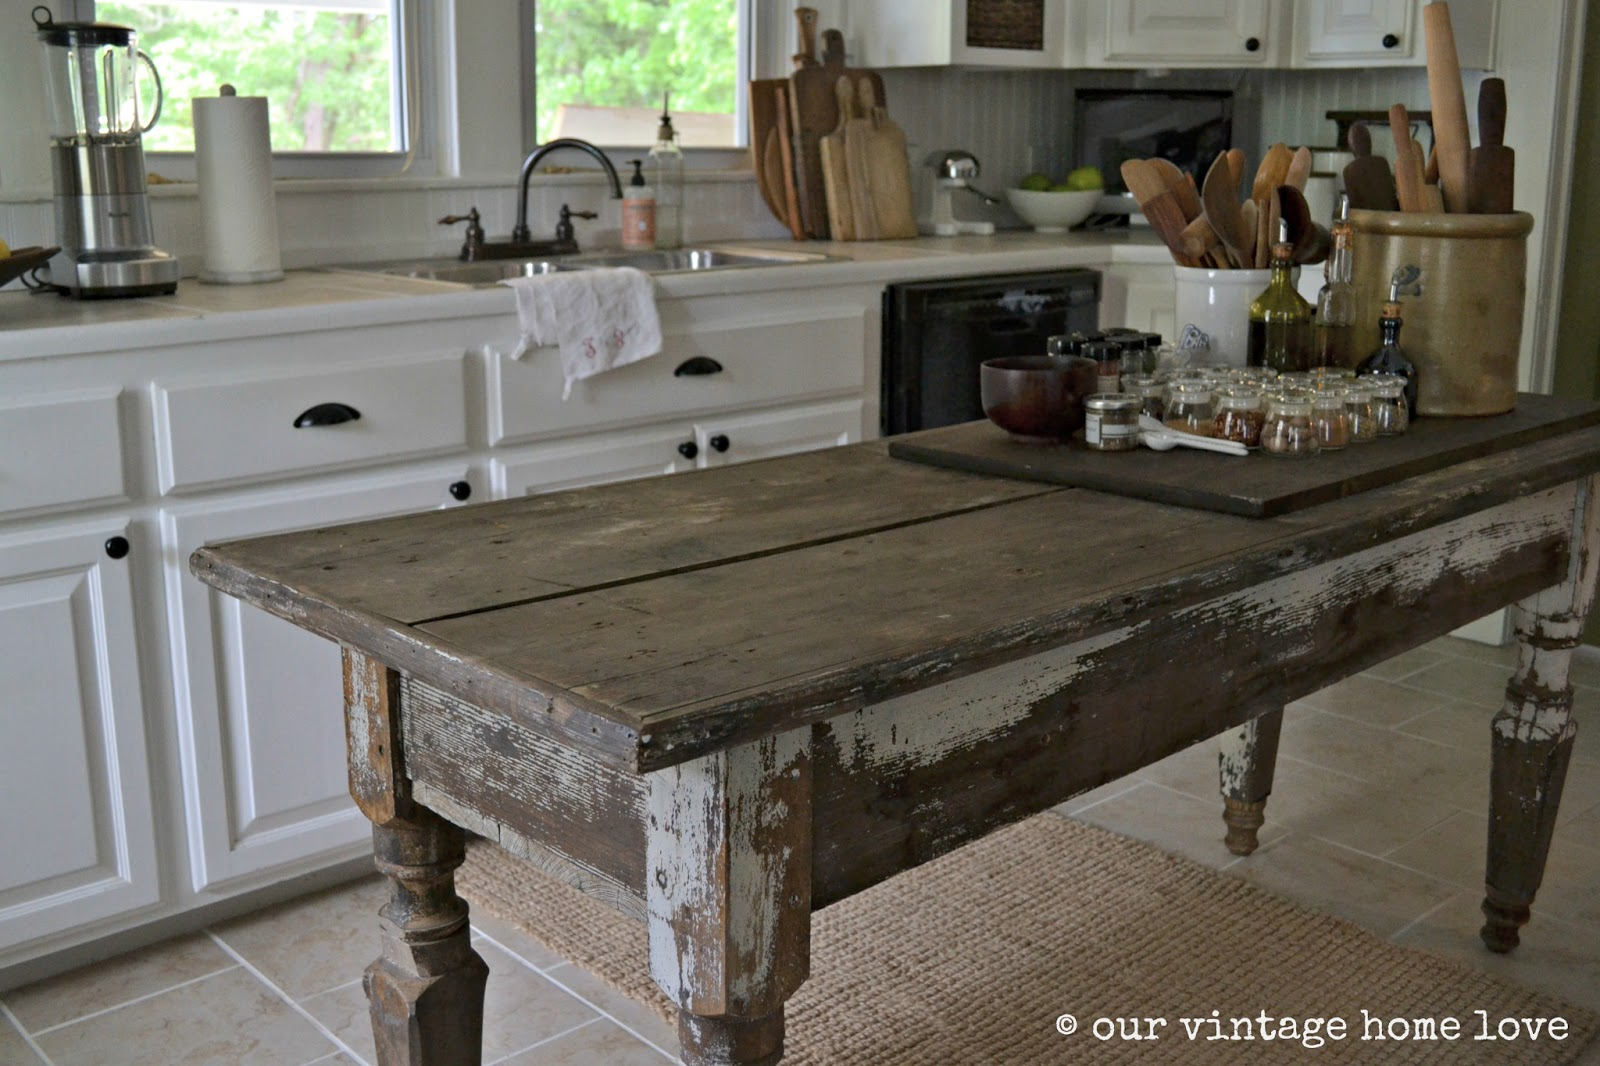 Farmhouse Table Company Vintage Home Love Farmhouse Table